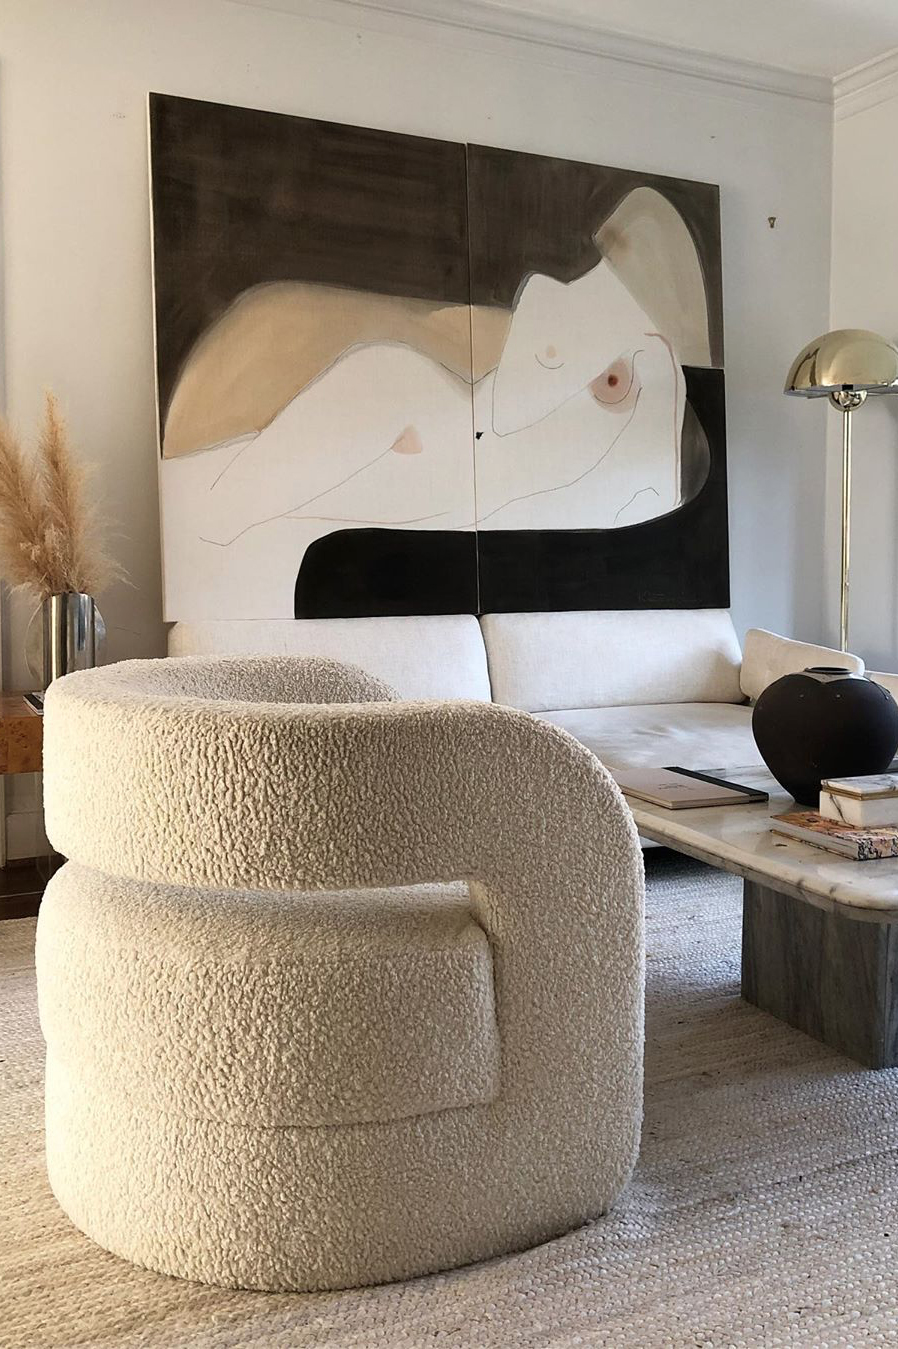 Trends We Love: '80s-Inspired Curved Furniture   EyeSwoon